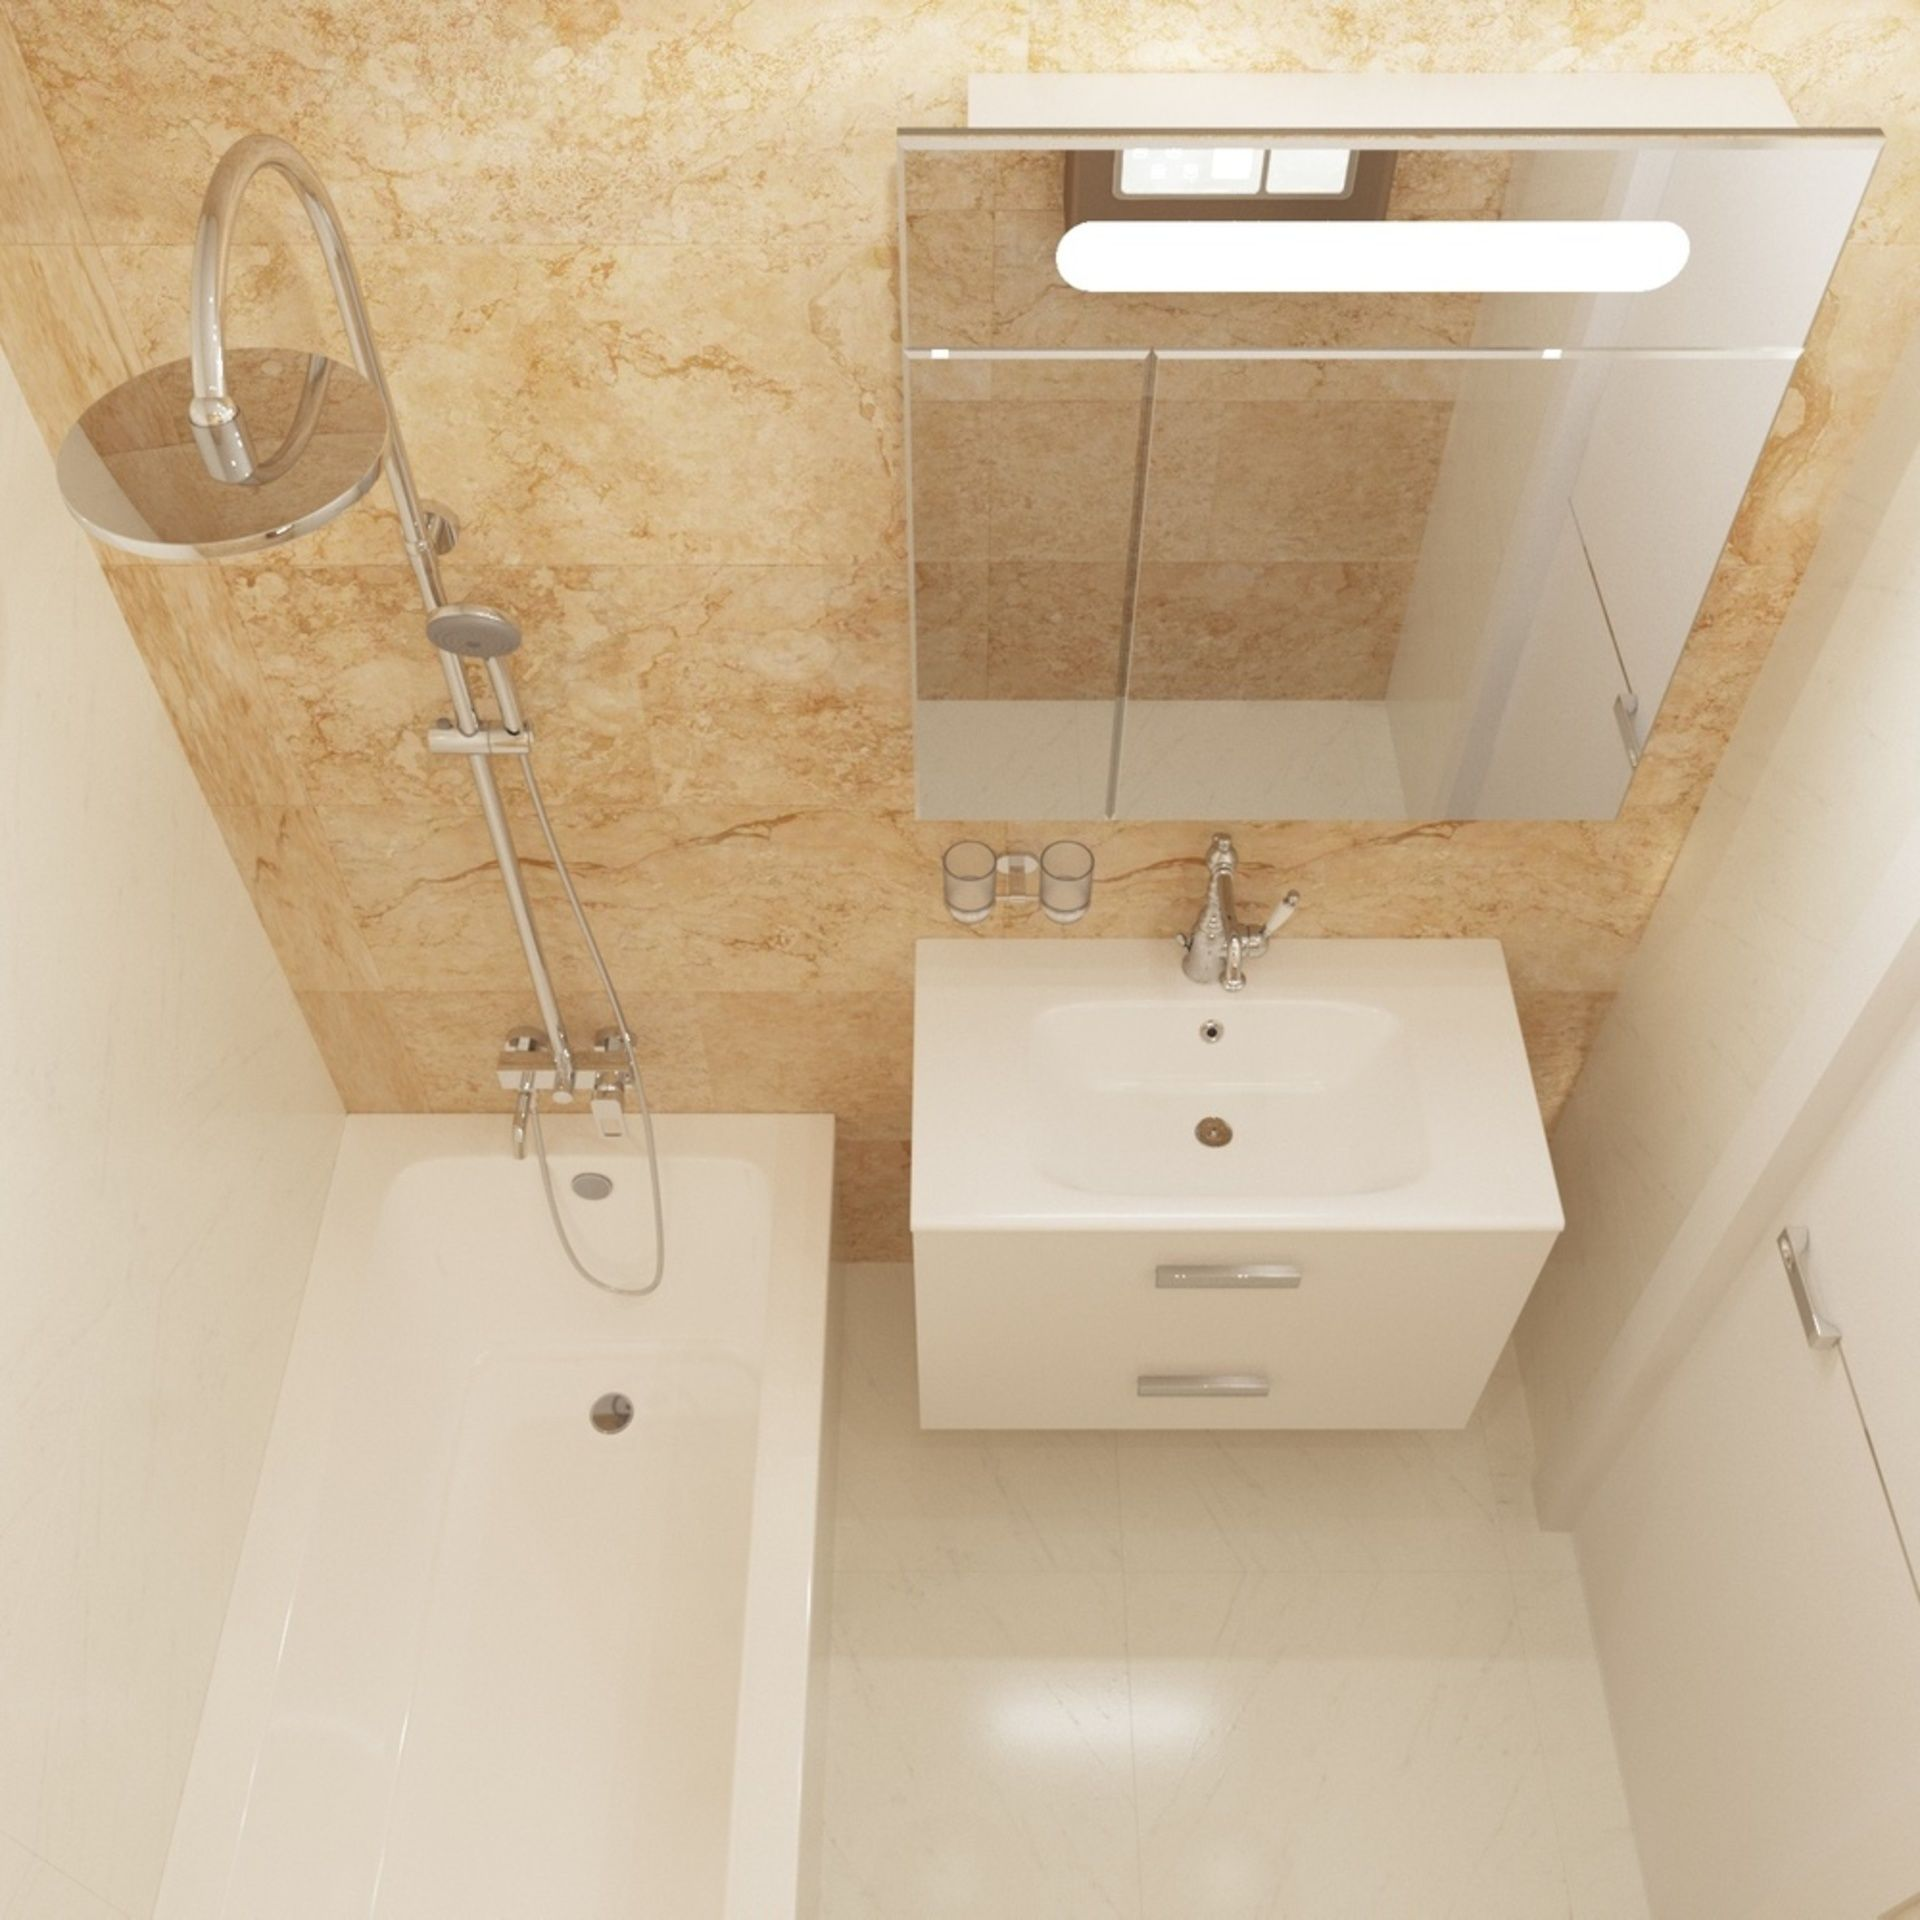 Version 1920 fit bathroom1